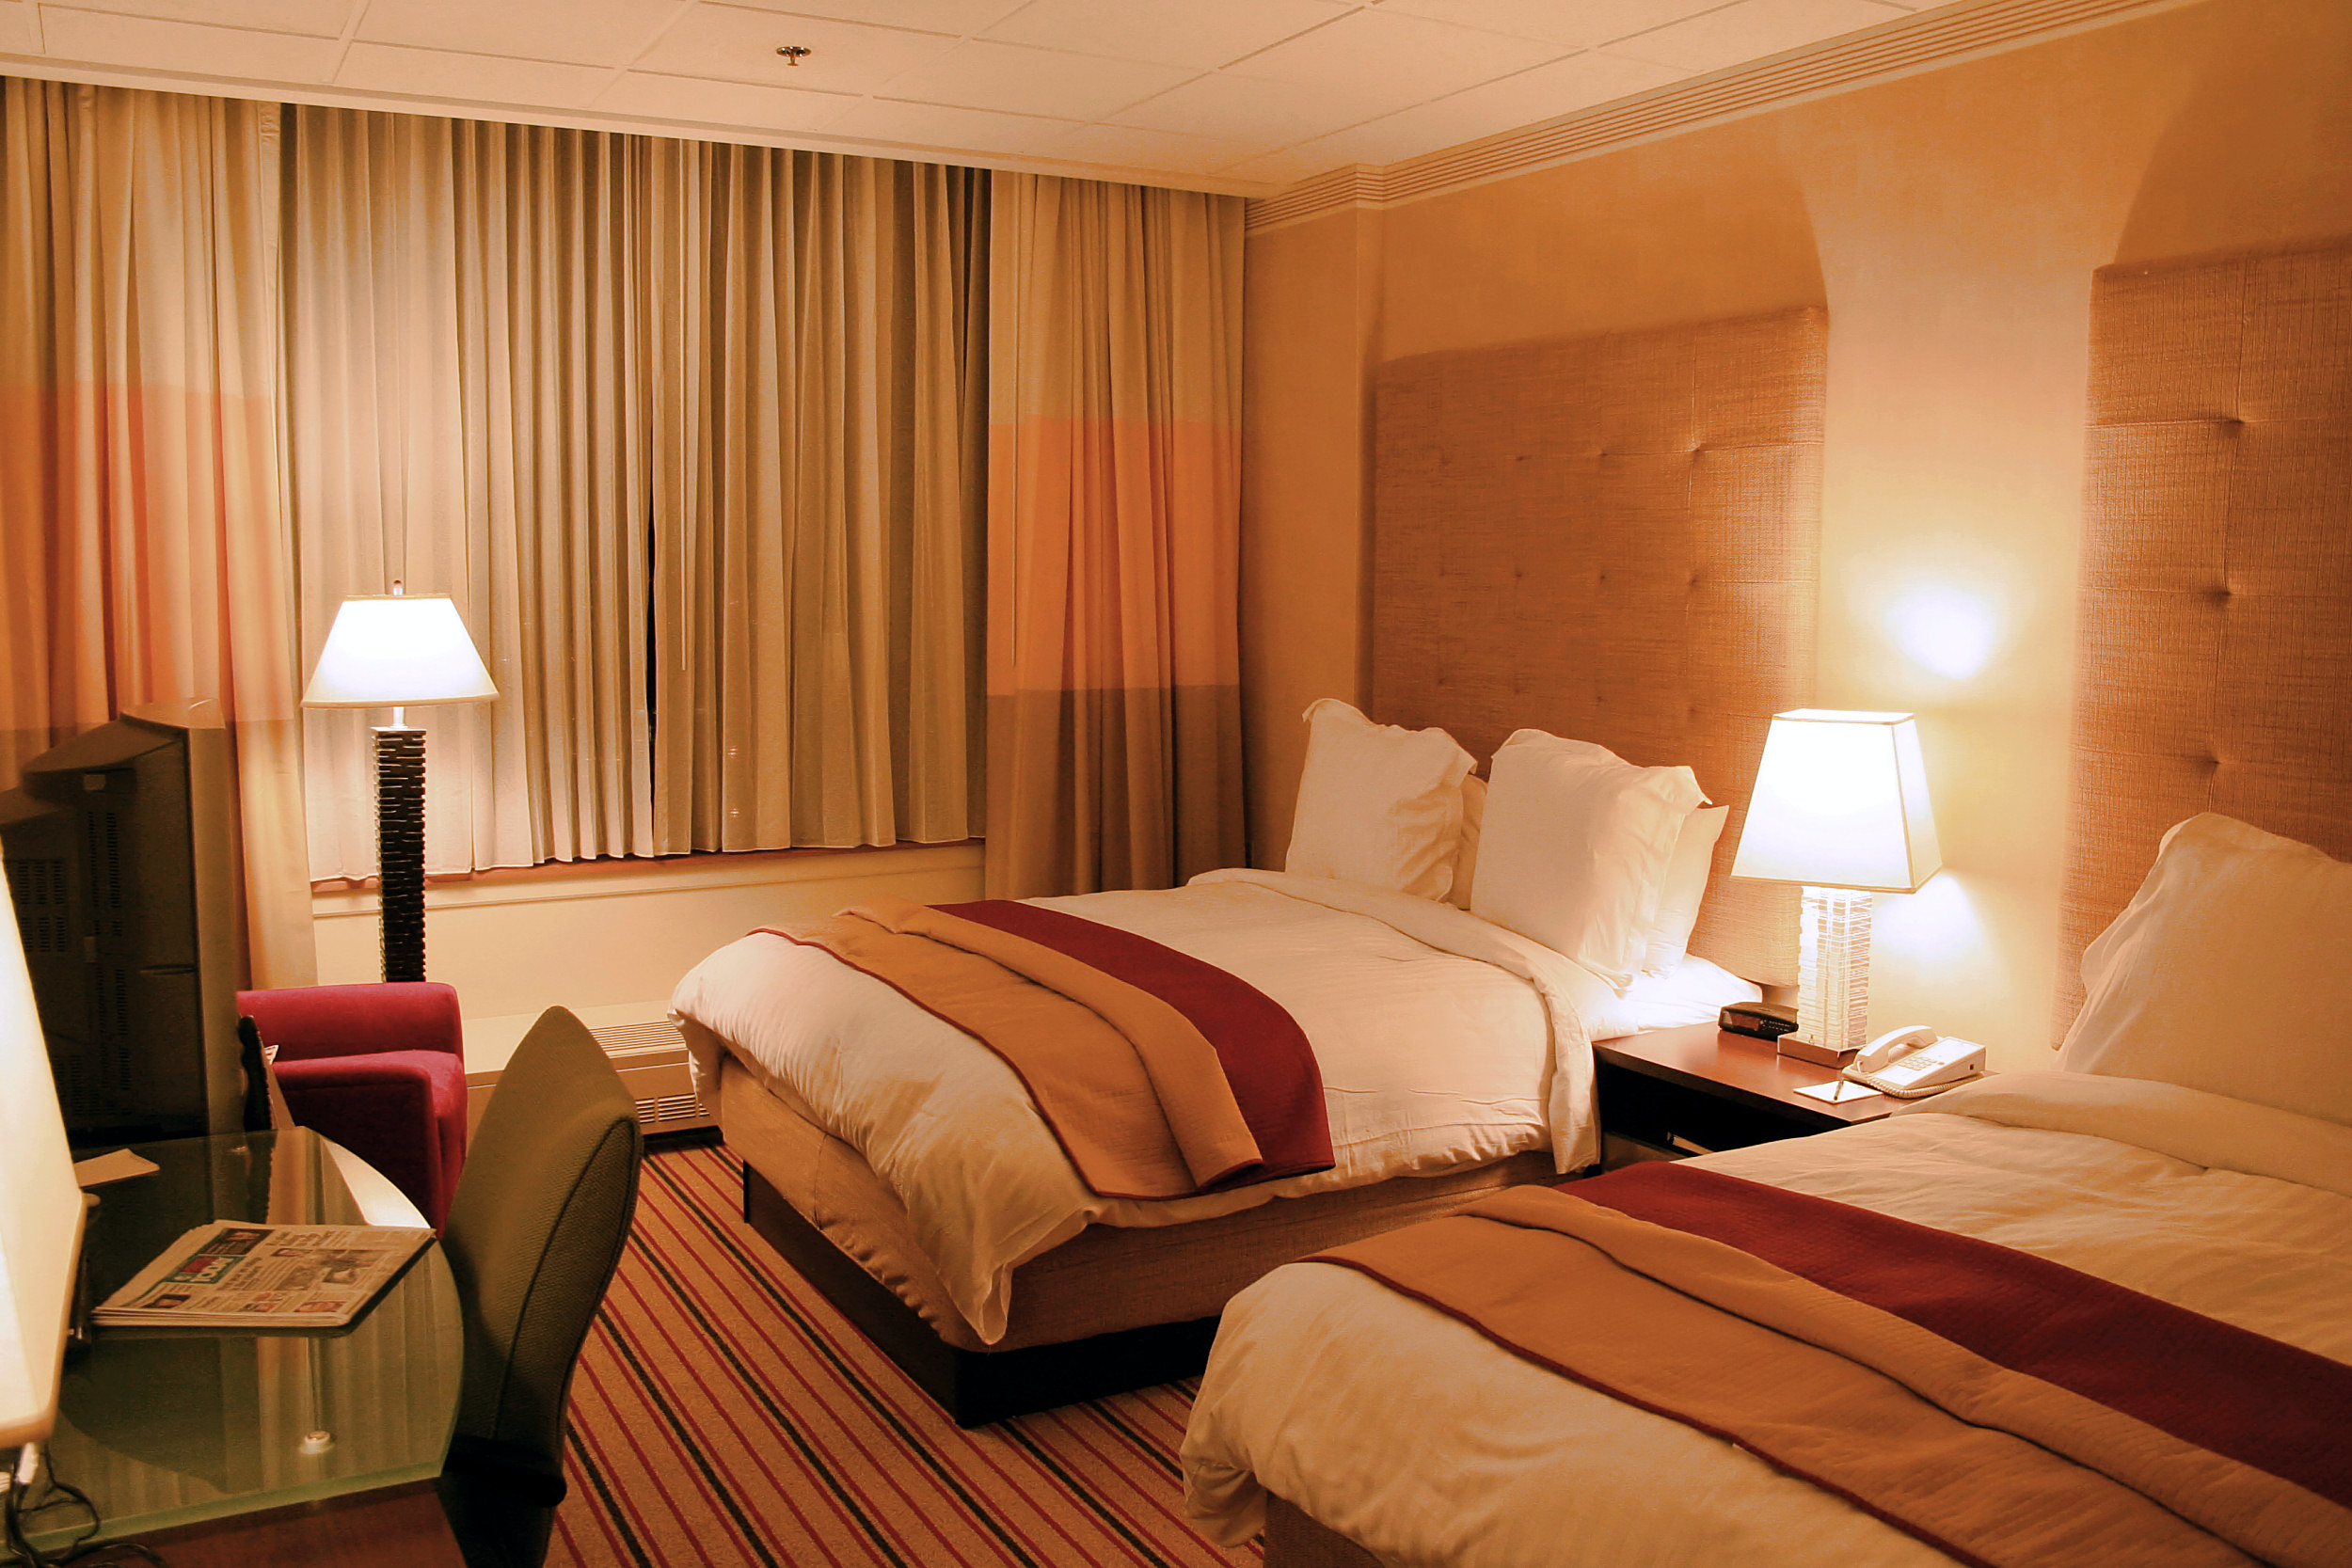 Cheap Hotels In Arlington Va